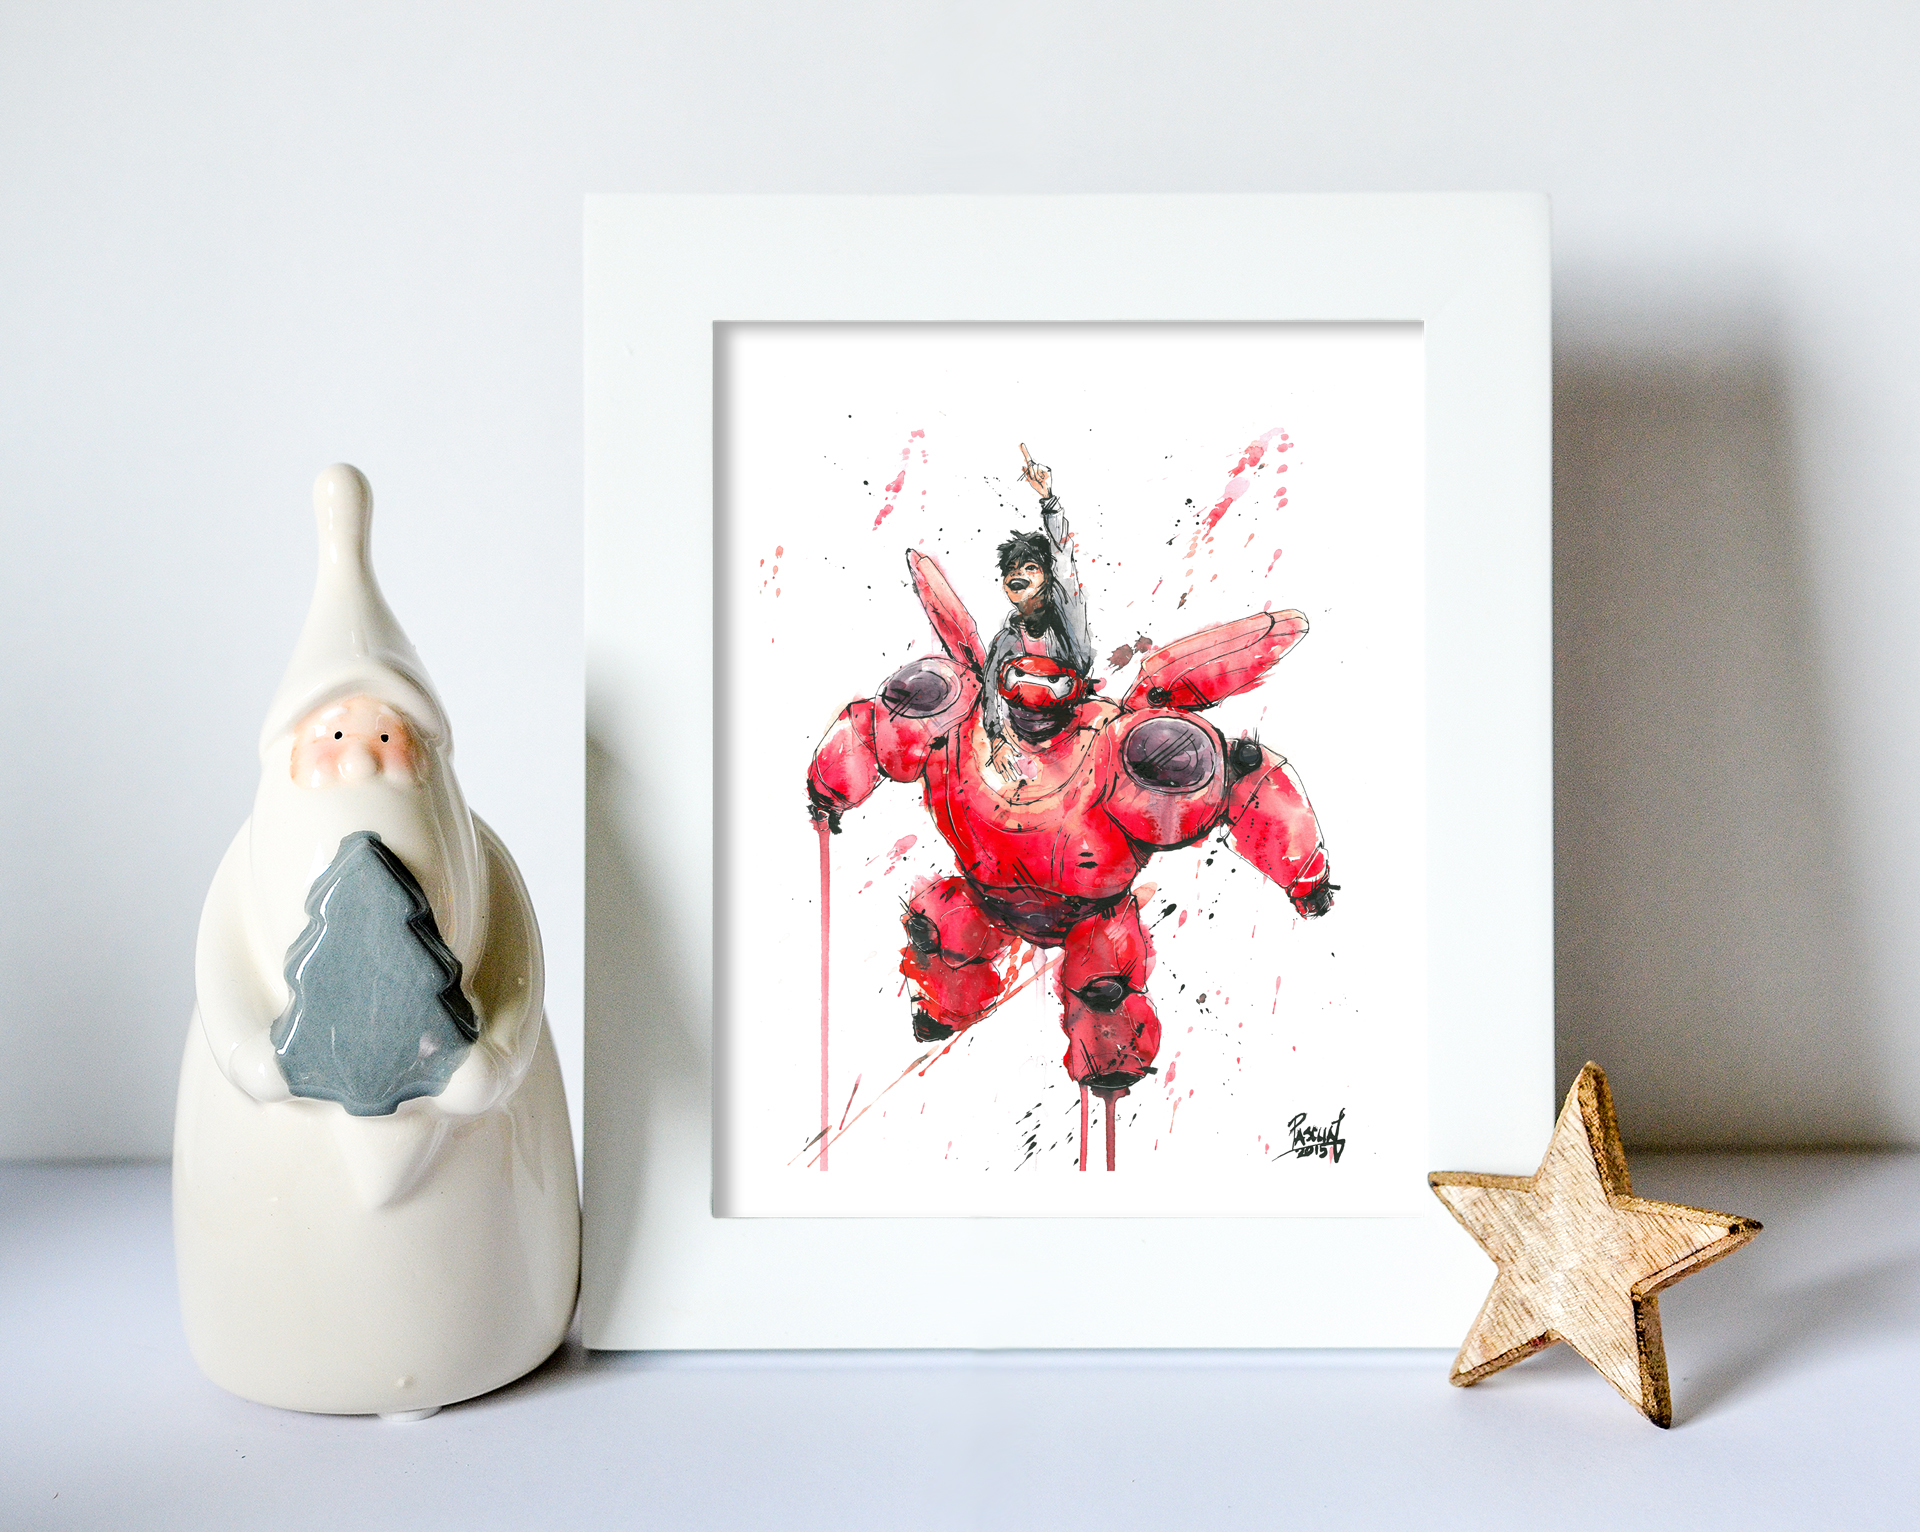 Watercolor Baymax print s tarting at $15  HERE   FUN FACT: Artists use reference photos to draw particular poses or angles of the face or body. Geoff needed a reference for Hiro, so he based his Hiro on a photo of himself. The resemblance is quite similar!